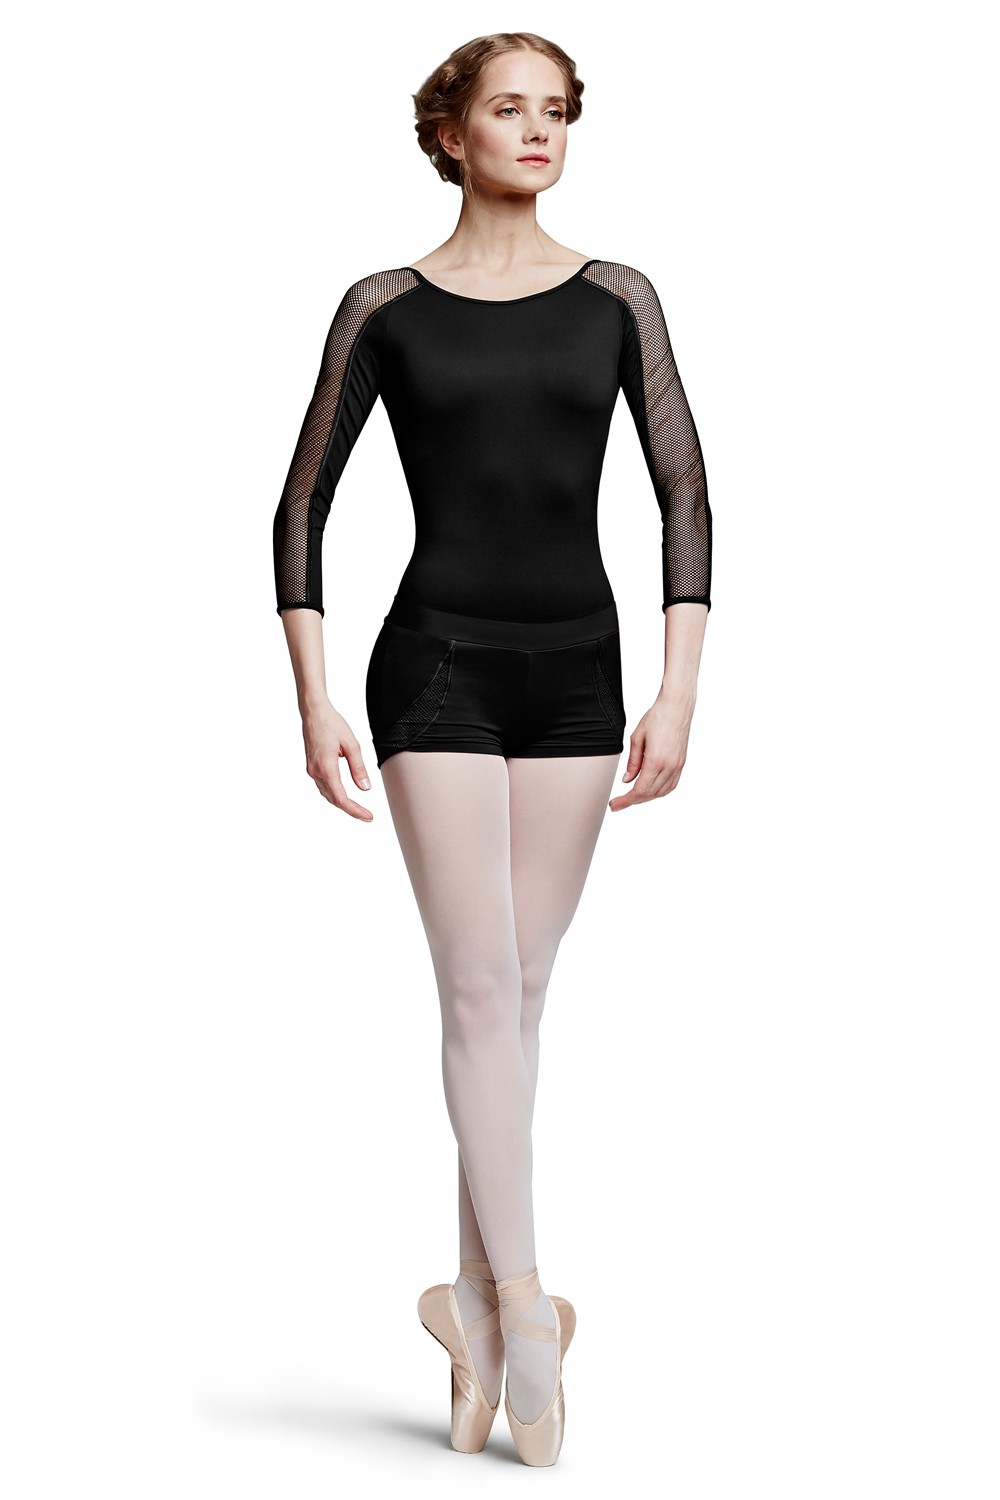 Carnelian  Women's Dance Leotards